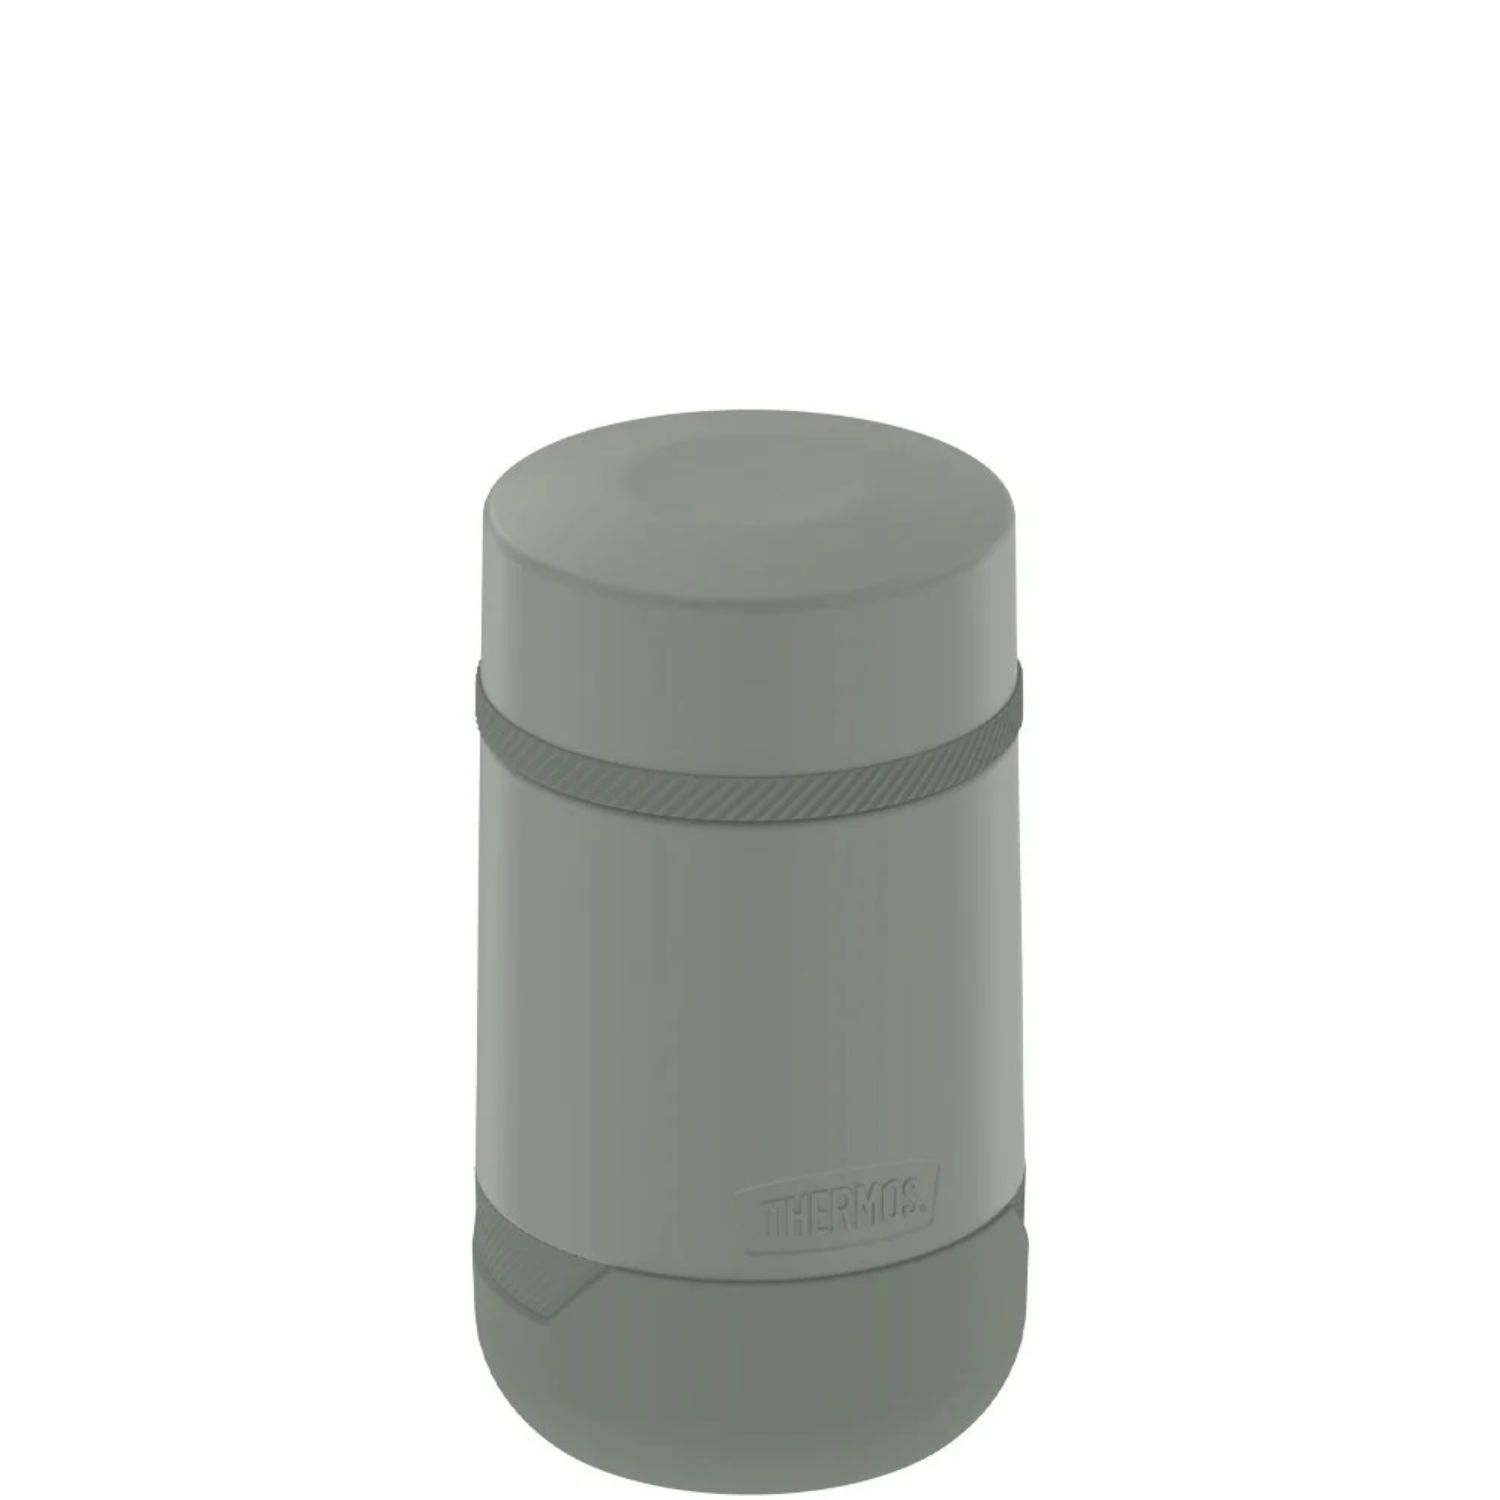 Thermos 18 oz Stainless Steel Food Jar Green